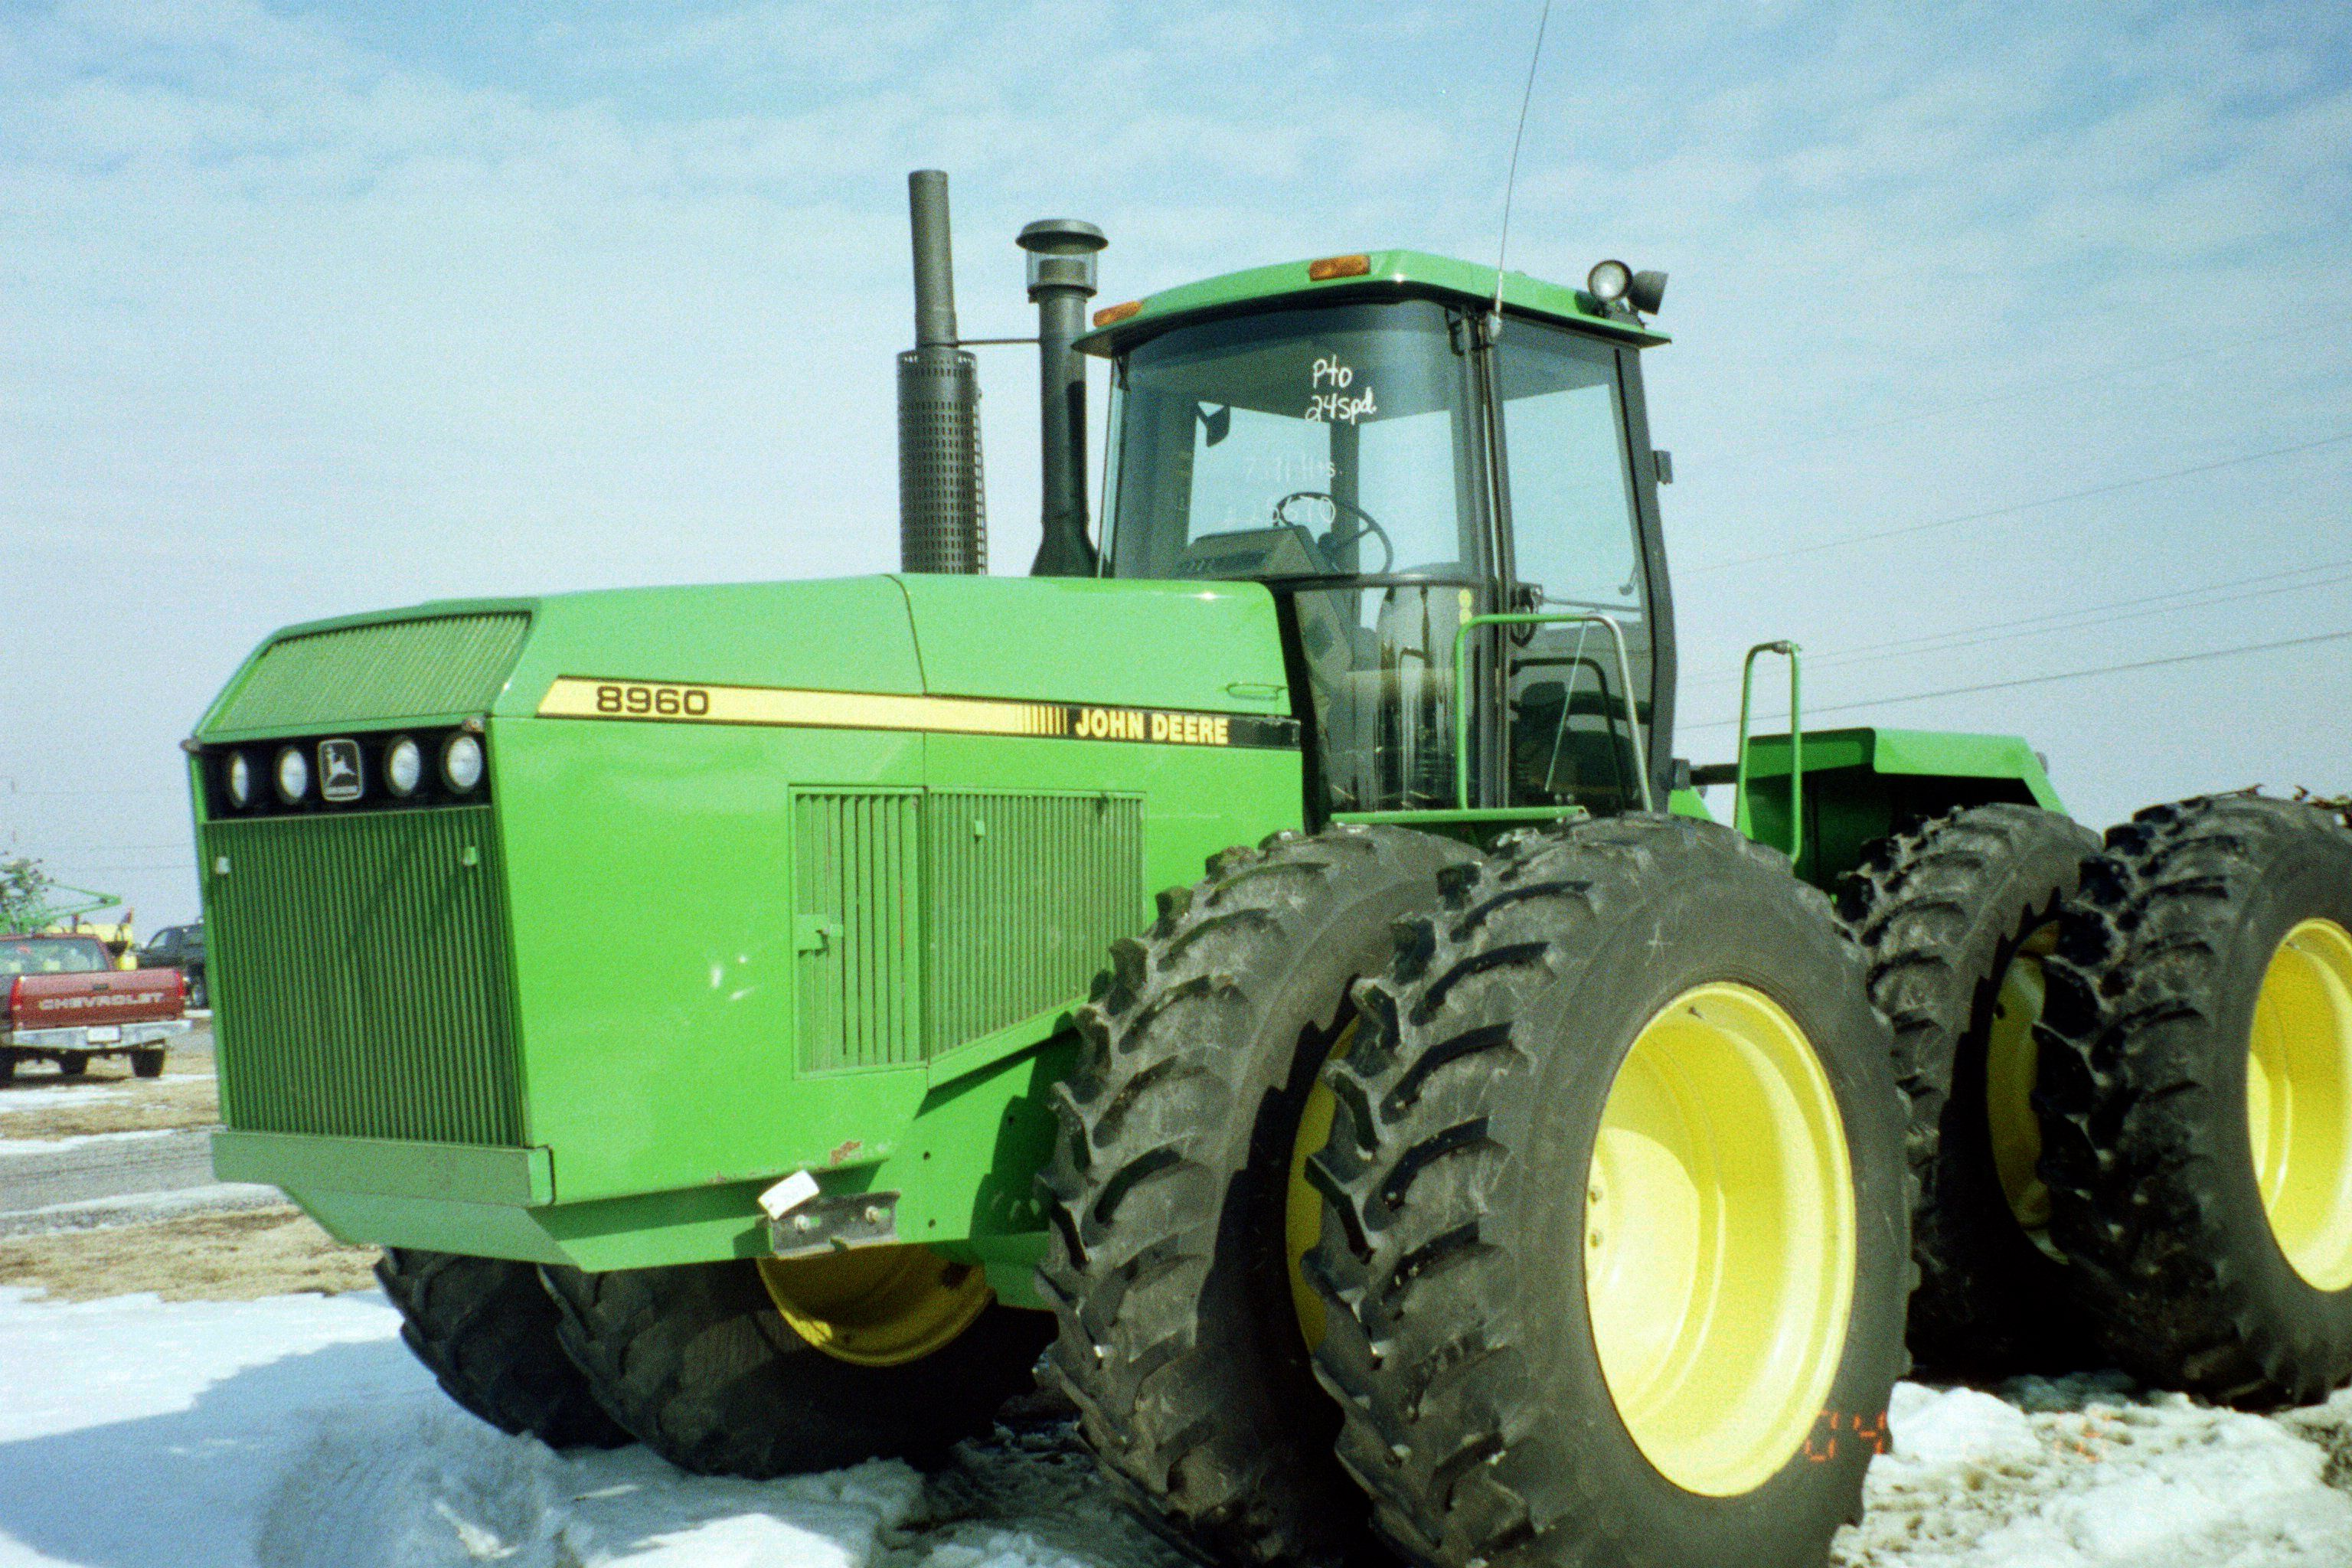 John Deere 8960 4 wheel drive tractor.Tested 333 PTO hp,308 dbr hp from a  Cummins 855 cid diesel,35,570 lbs